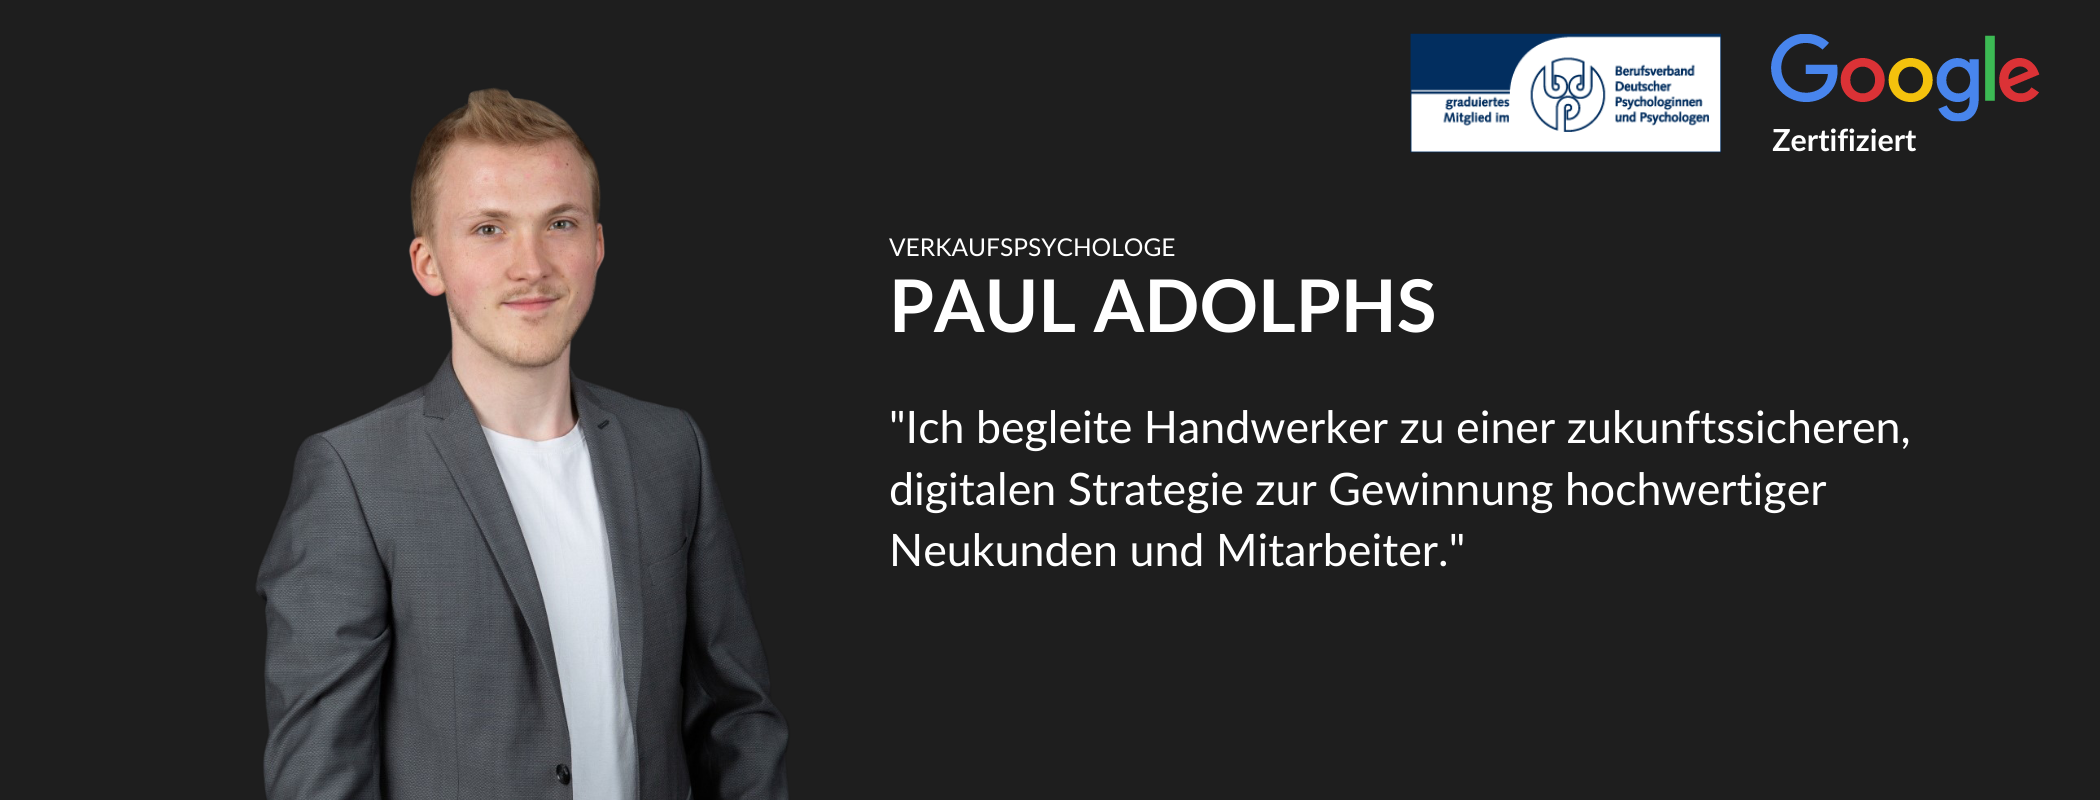 Paul Adolphs Marketing Handwerk